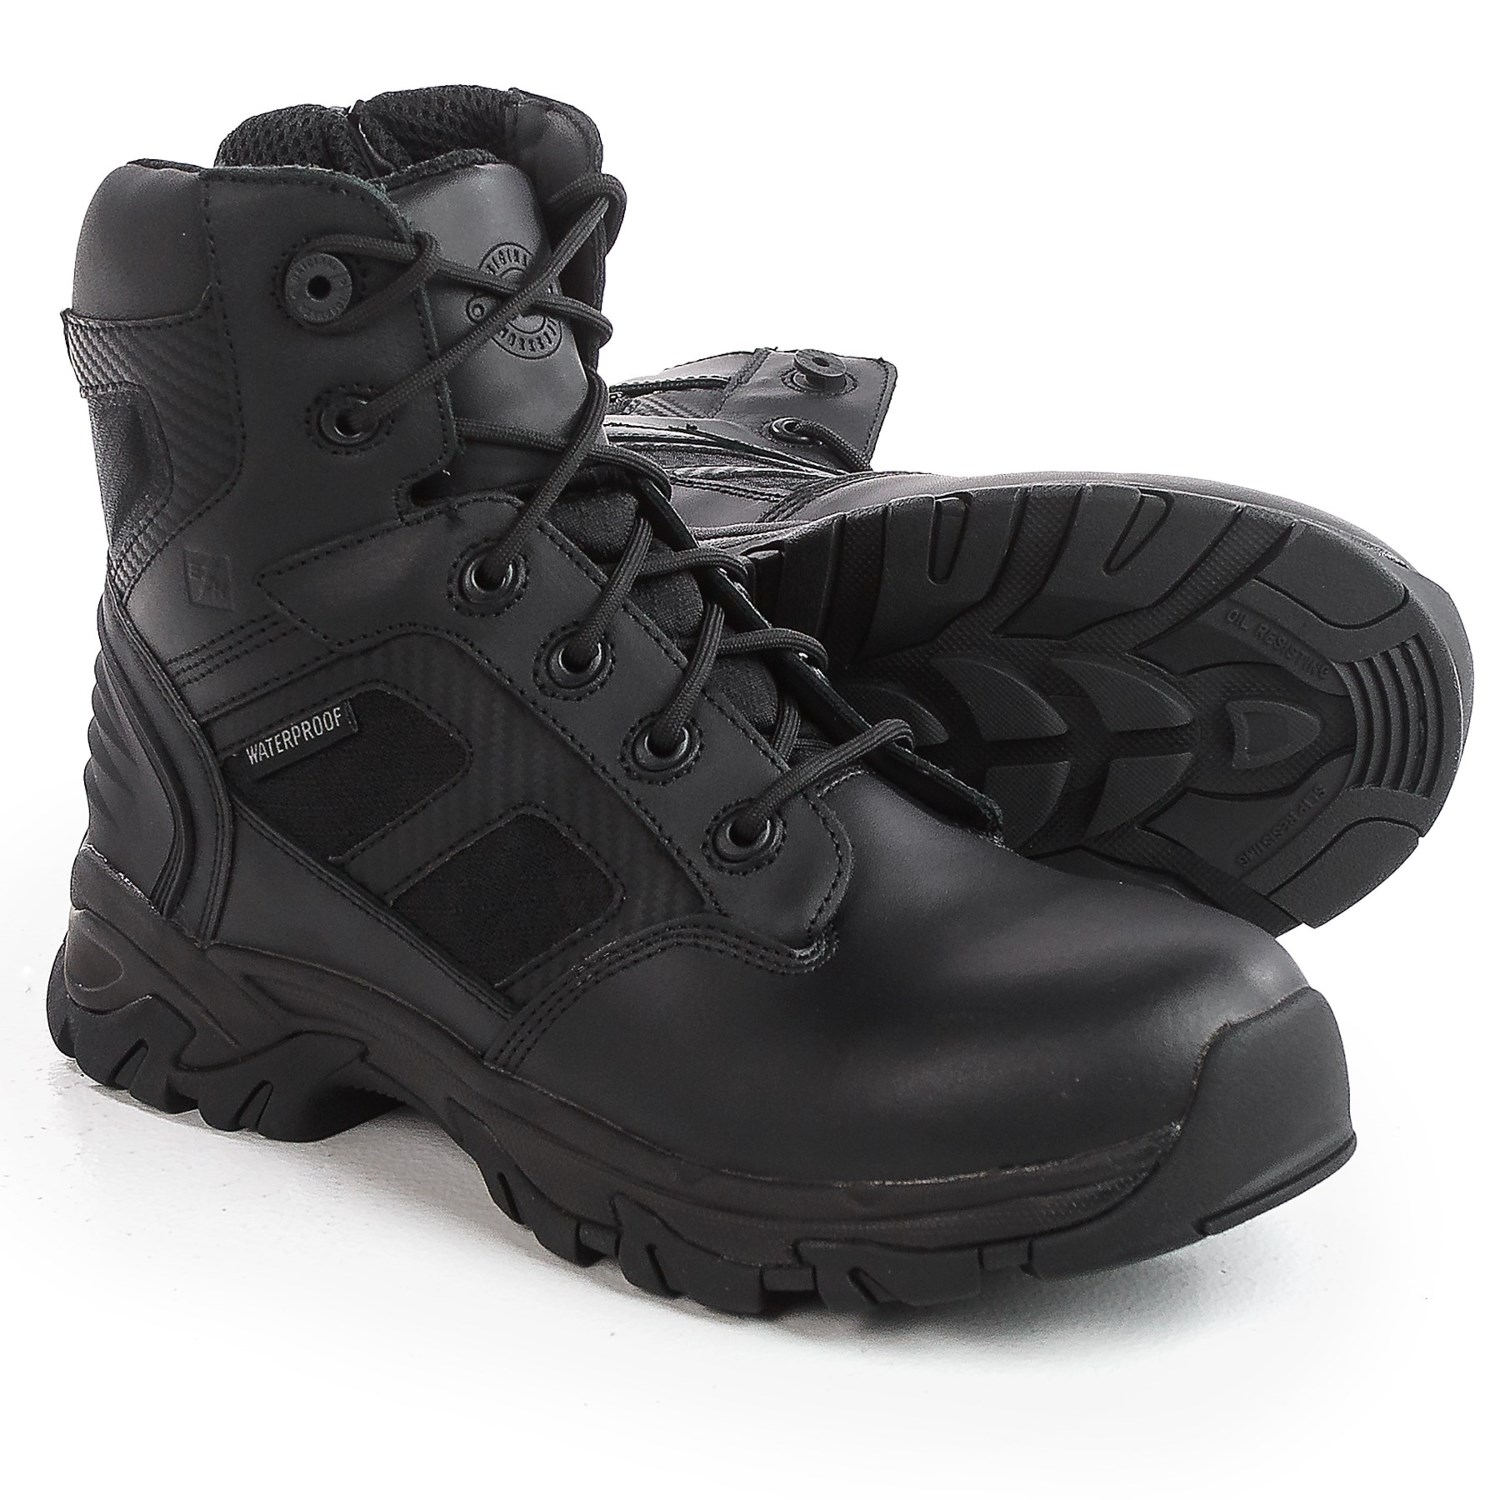 Men's Work Boots: Average savings of 45% at Sierra Trading Post